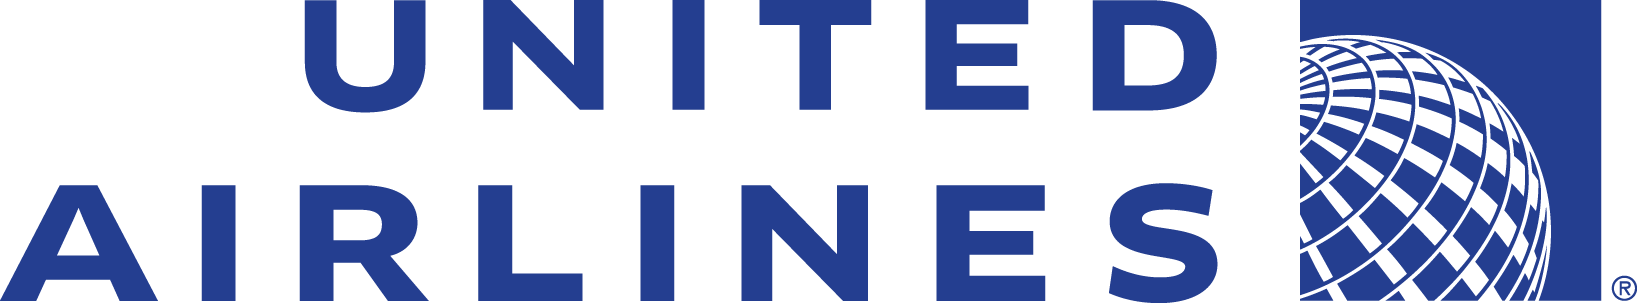 United Airlines Logo PNG - 176614